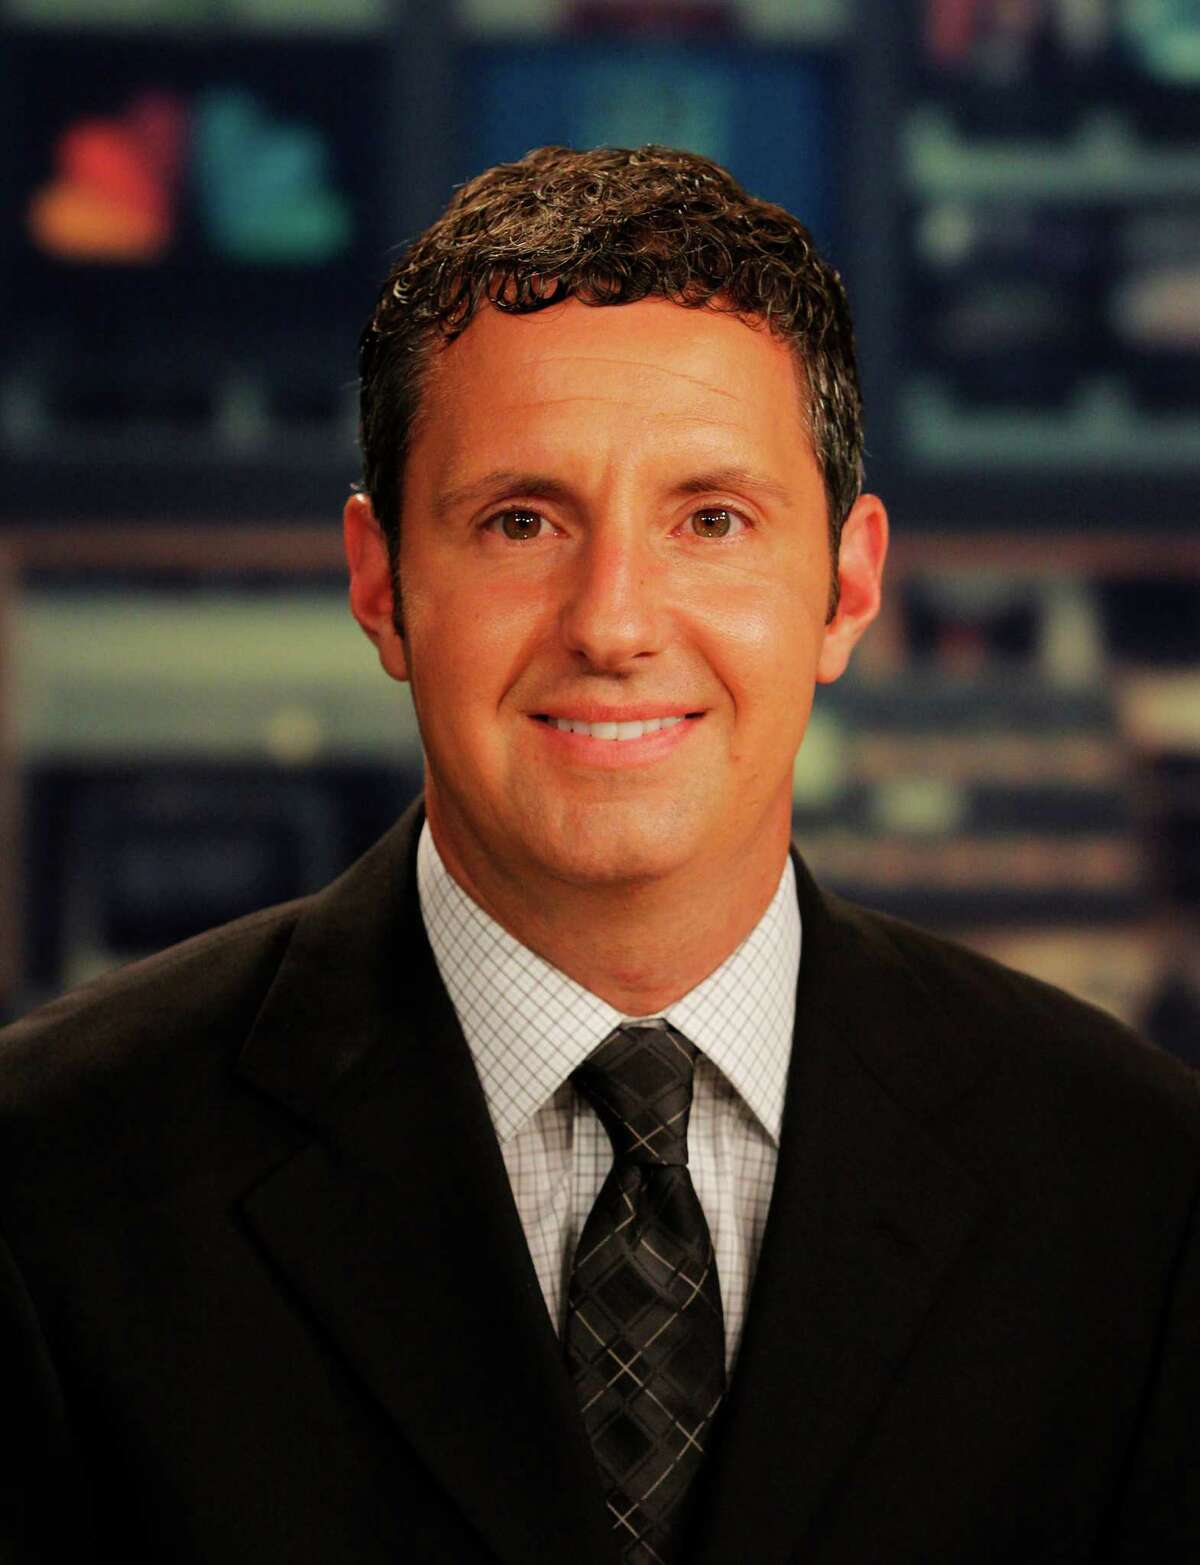 Andrew Catalon, a WNYT sports anchor pictured here in their studio in Menands, N.Y., Wednesday July 11, will be covering the Olympics for NBC this Summer. (Dan Little/Special to the Times Union)